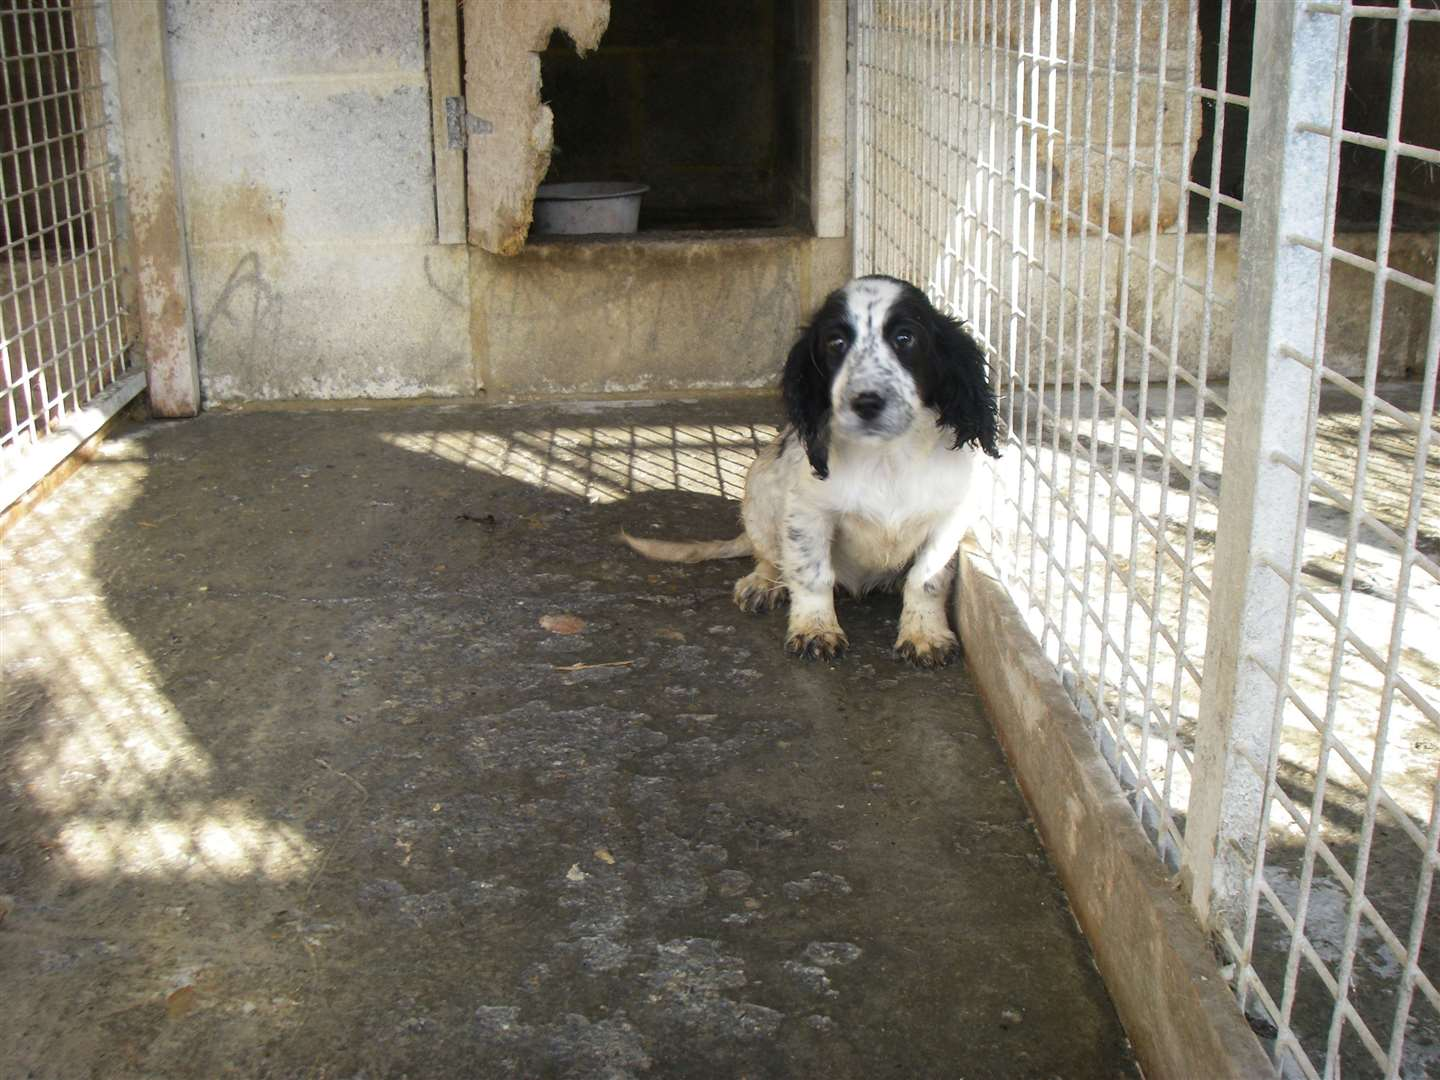 Many animals were stored in small cages without beds or toys. Picture: RSPCA (15157828)